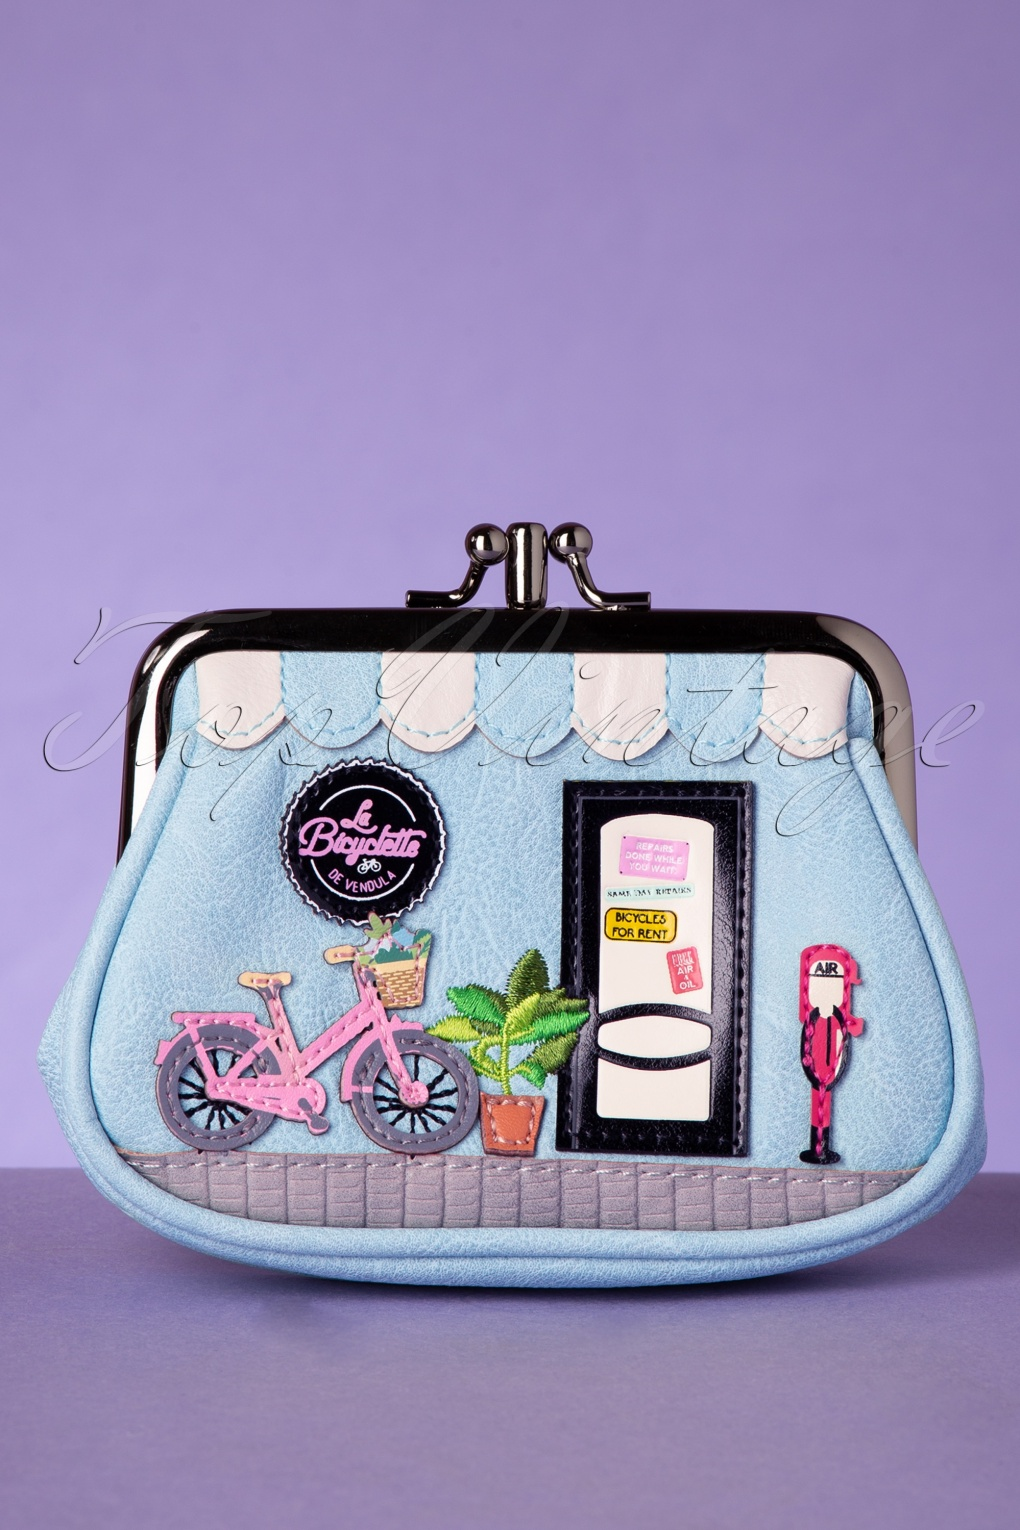 Vintage & Retro Handbags, Purses, Wallets, Bags 50s Vintage Bicyclette Coin Purse in Heavenly Blue �22.92 AT vintagedancer.com